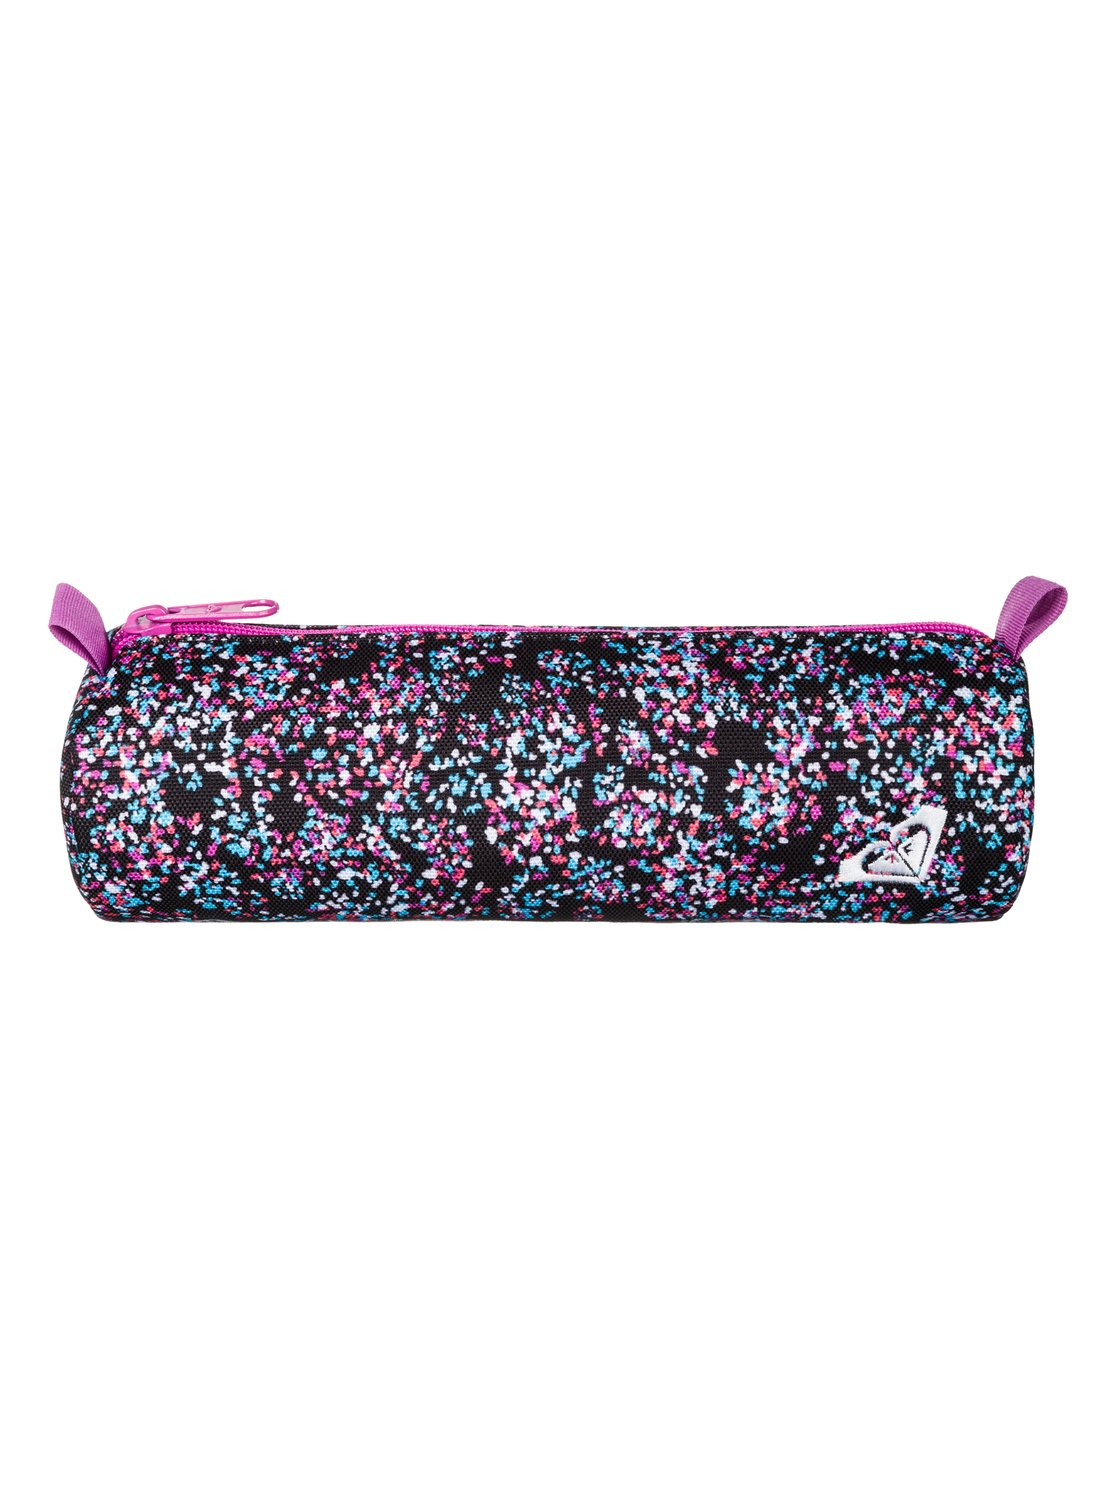 (fillette) Roxy Trousse scolaire Off The Wall fRd0P4Do